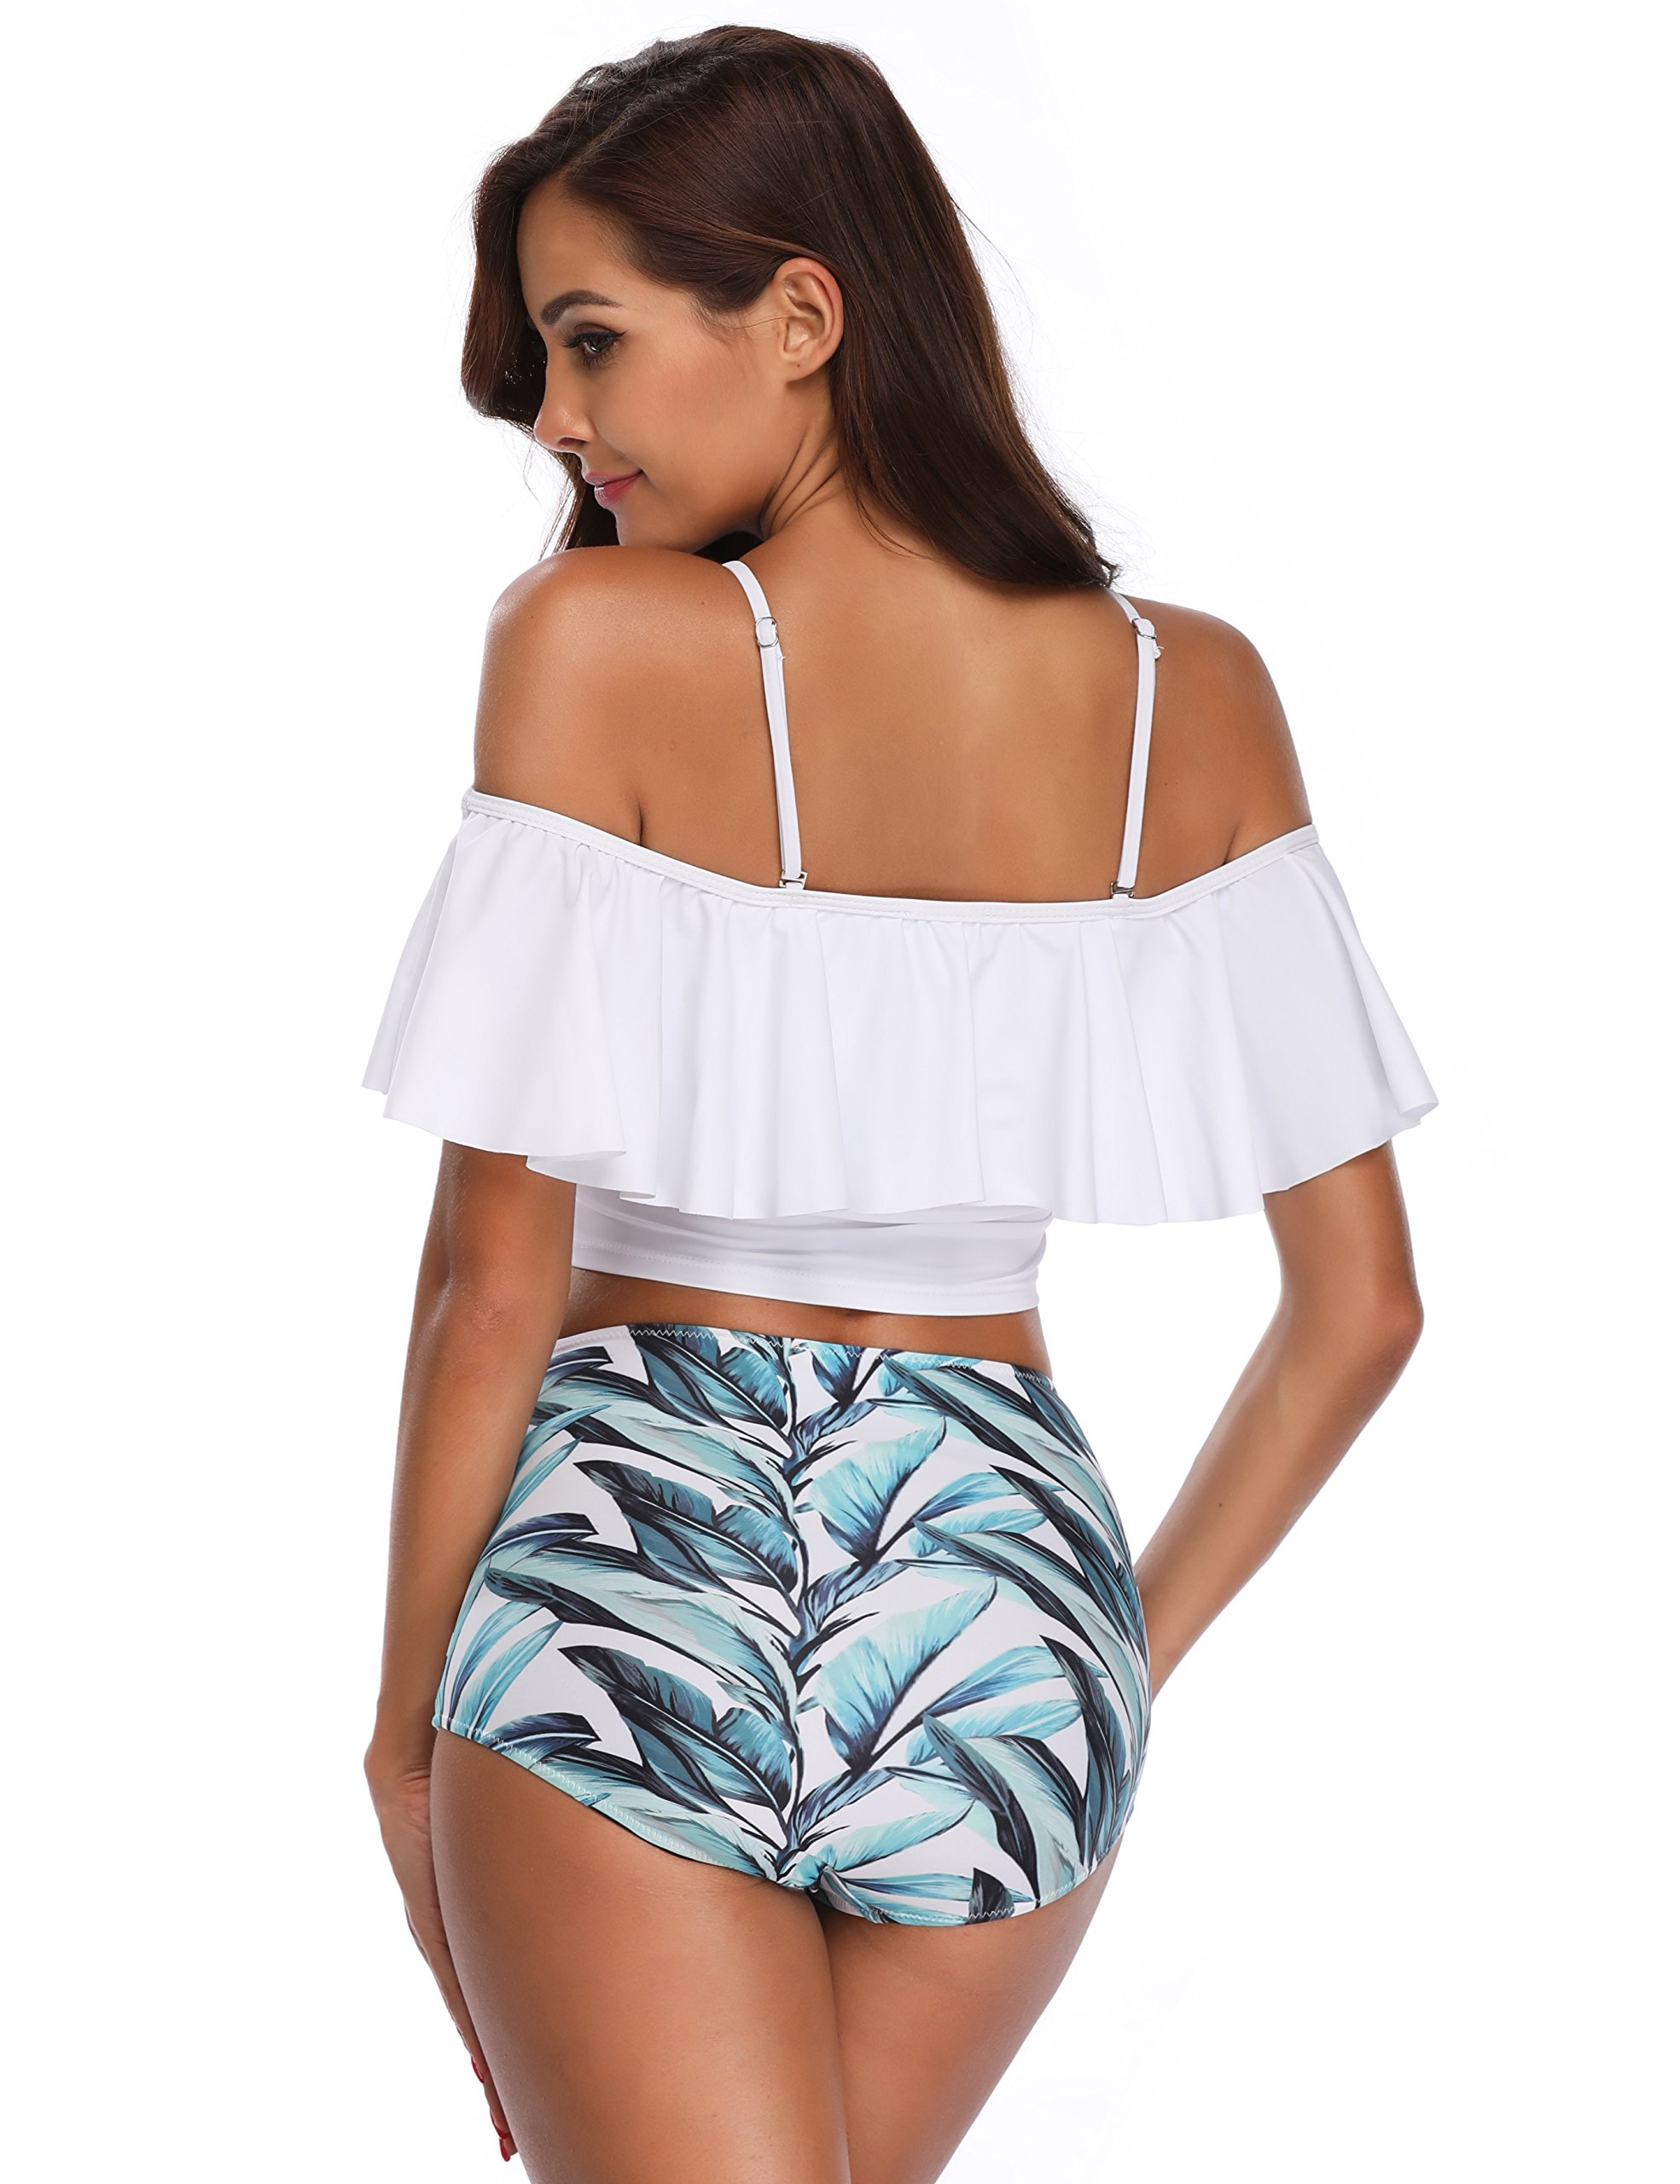 MarinaVida Women Off Shoulder Ruffle Swimsuit Crop Top Two Piece Bathing Suit